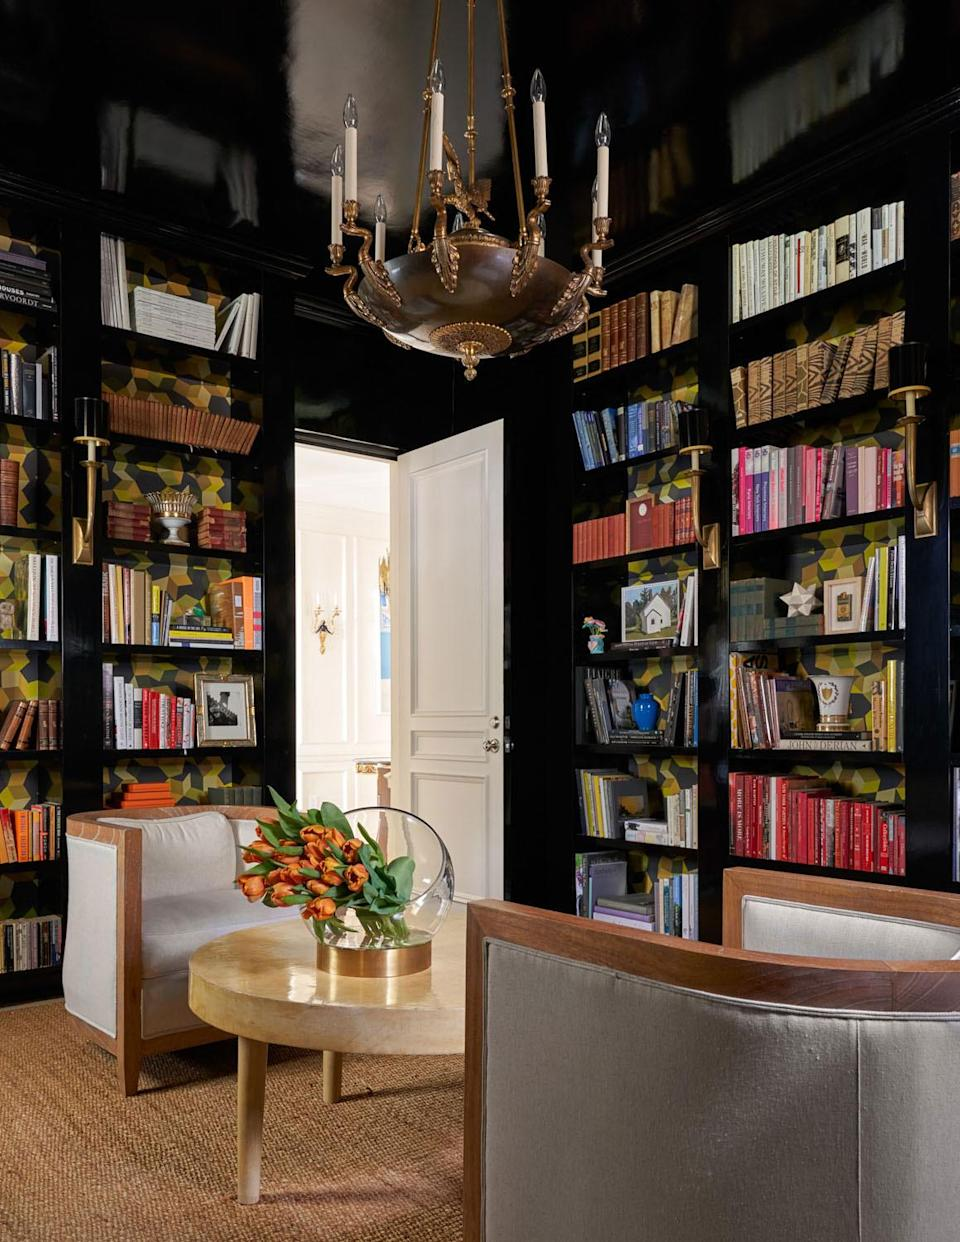 """<p>When designing a small space, Interior designer <a href=""""https://www.jeanliudesign.com/"""" rel=""""nofollow noopener"""" target=""""_blank"""" data-ylk=""""slk:Jean Liu"""" class=""""link rapid-noclick-resp"""">Jean Liu</a> encourages clients to use a dark paint color like <a href=""""https://www.sherwin-williams.com/homeowners/products/SW6258-tricorn-black"""" rel=""""nofollow noopener"""" target=""""_blank"""" data-ylk=""""slk:Tricorn Black"""" class=""""link rapid-noclick-resp"""">Tricorn Black</a> by Sherwin Williams. """"Contrary to conventional thinking, painting a room dark and minimizing the delineation between the walls, the ceilings, and the baseboards allows the room to appear larger and taller than it may actually be,"""" she says. """"We love the effect it gave this small library.""""</p>"""